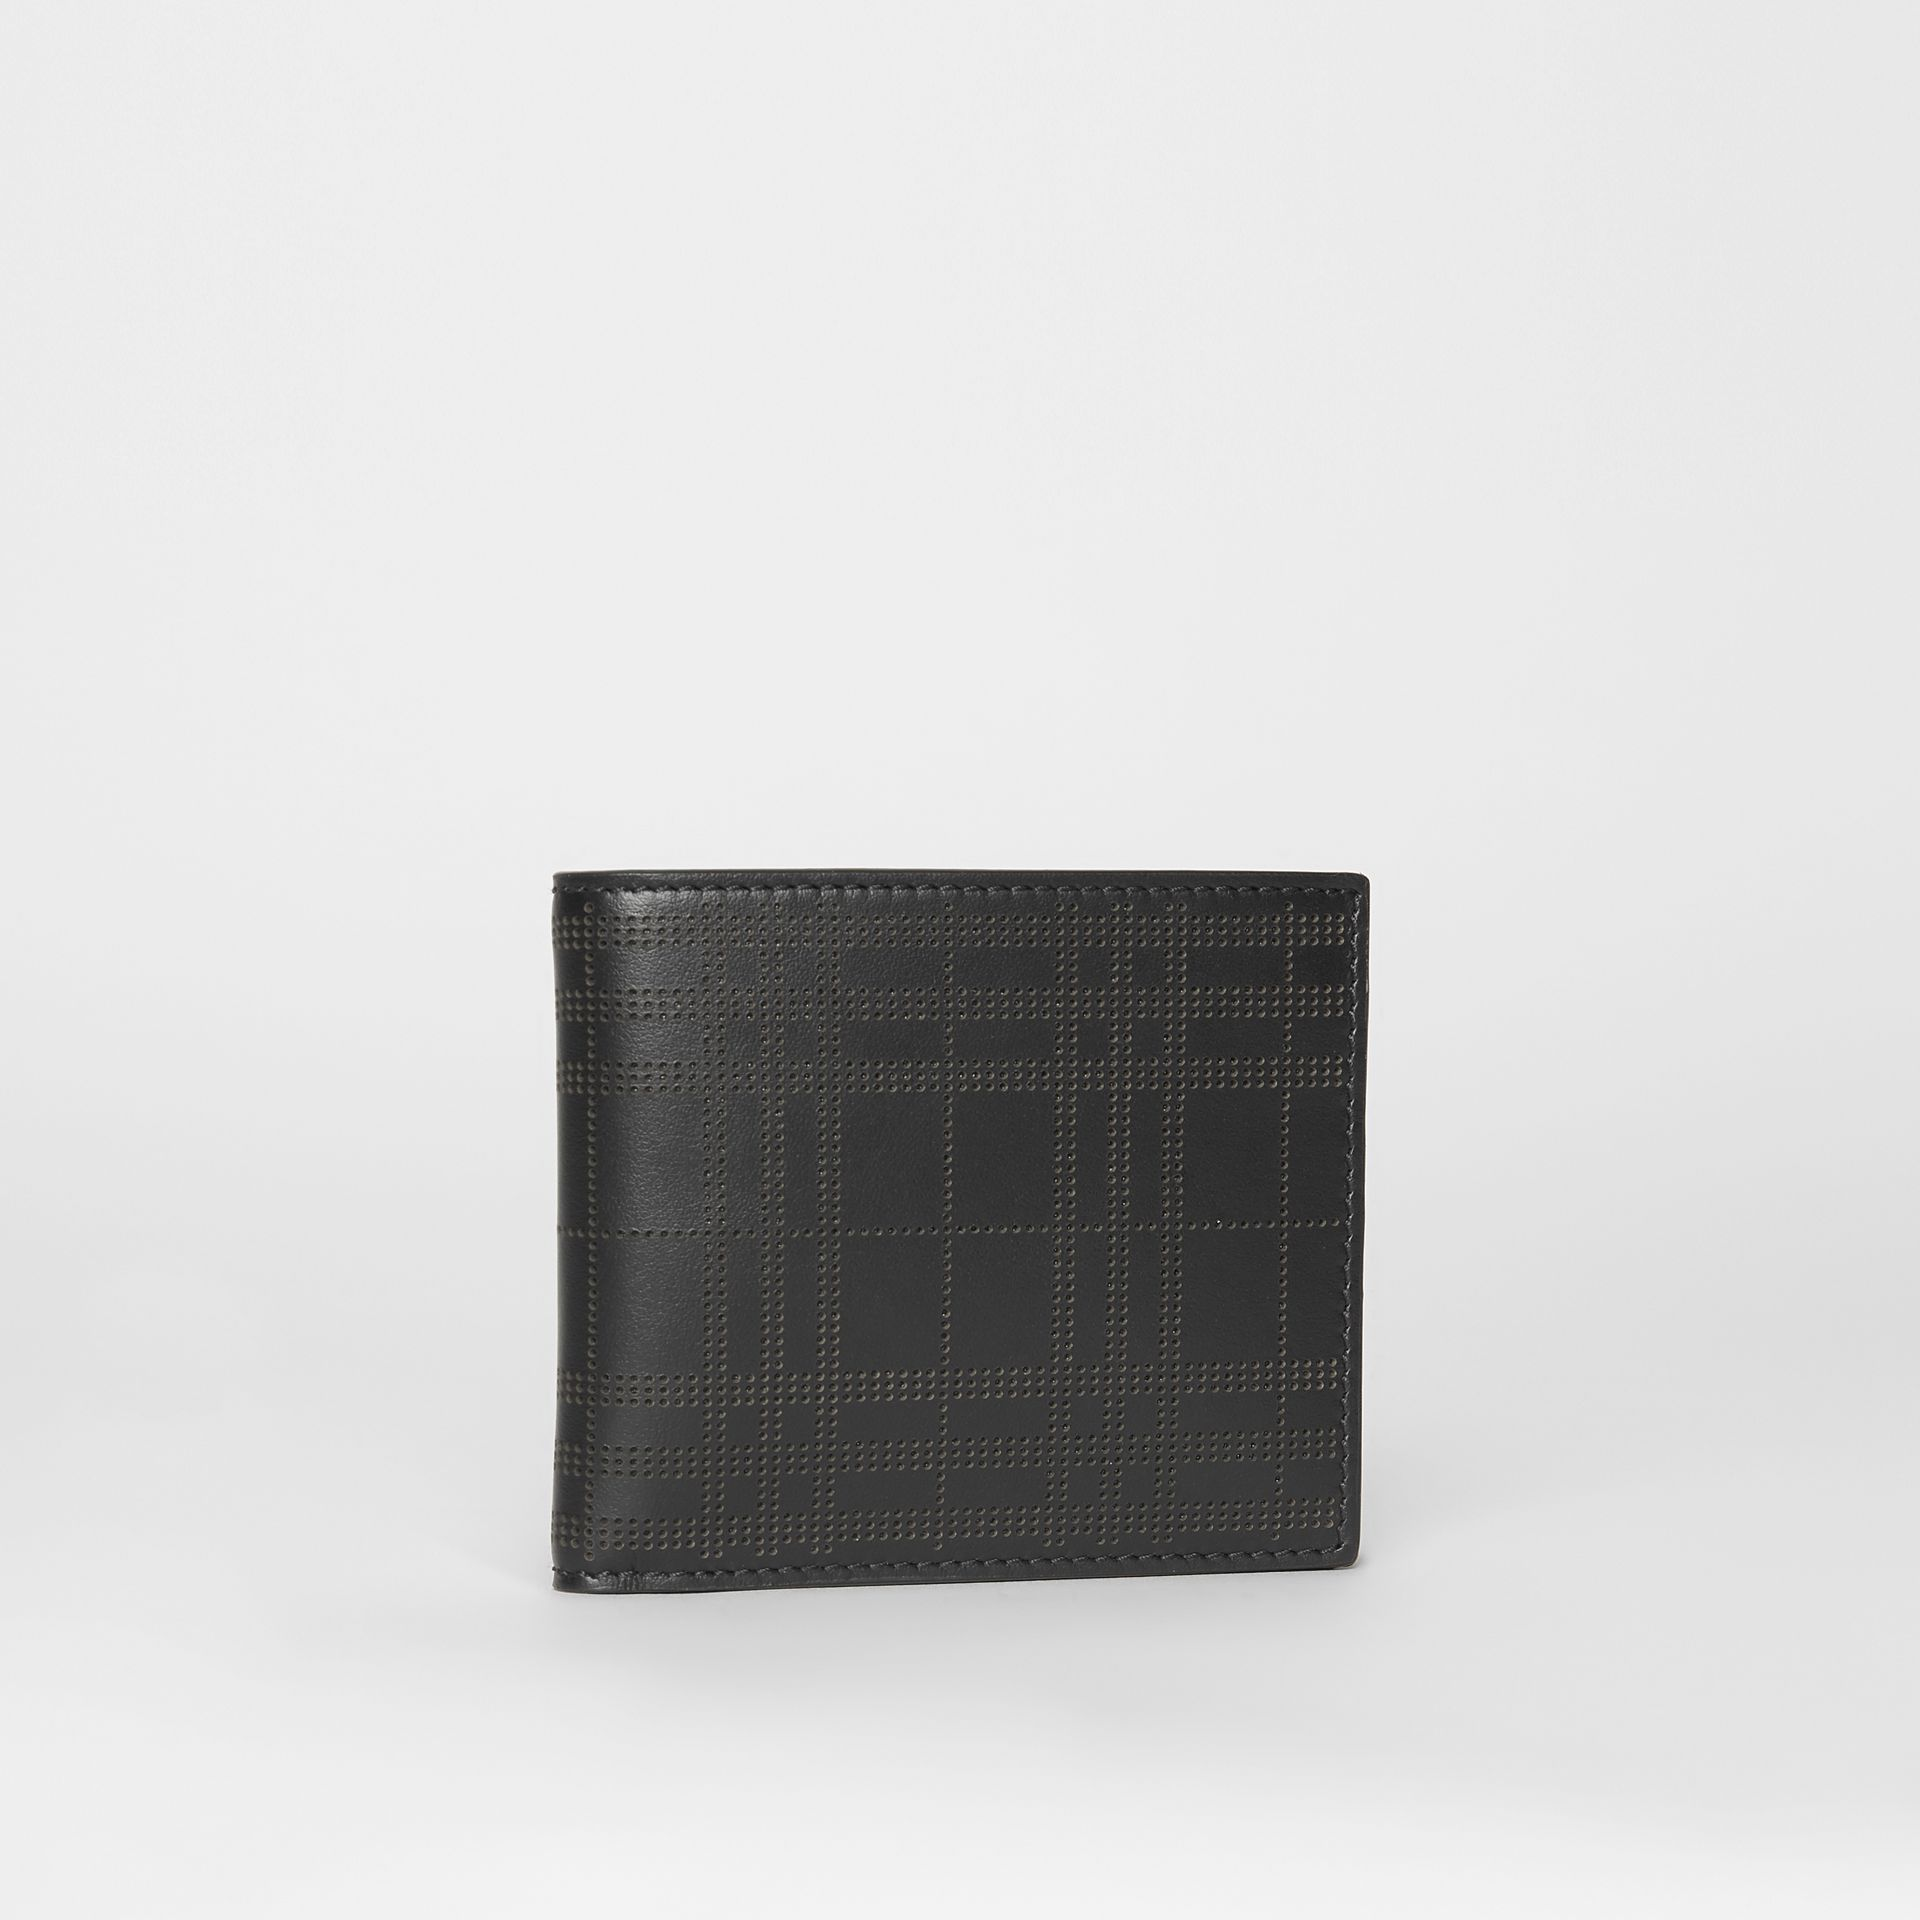 Perforated Check Leather International Bifold Wallet in Black - Men | Burberry Australia - gallery image 3